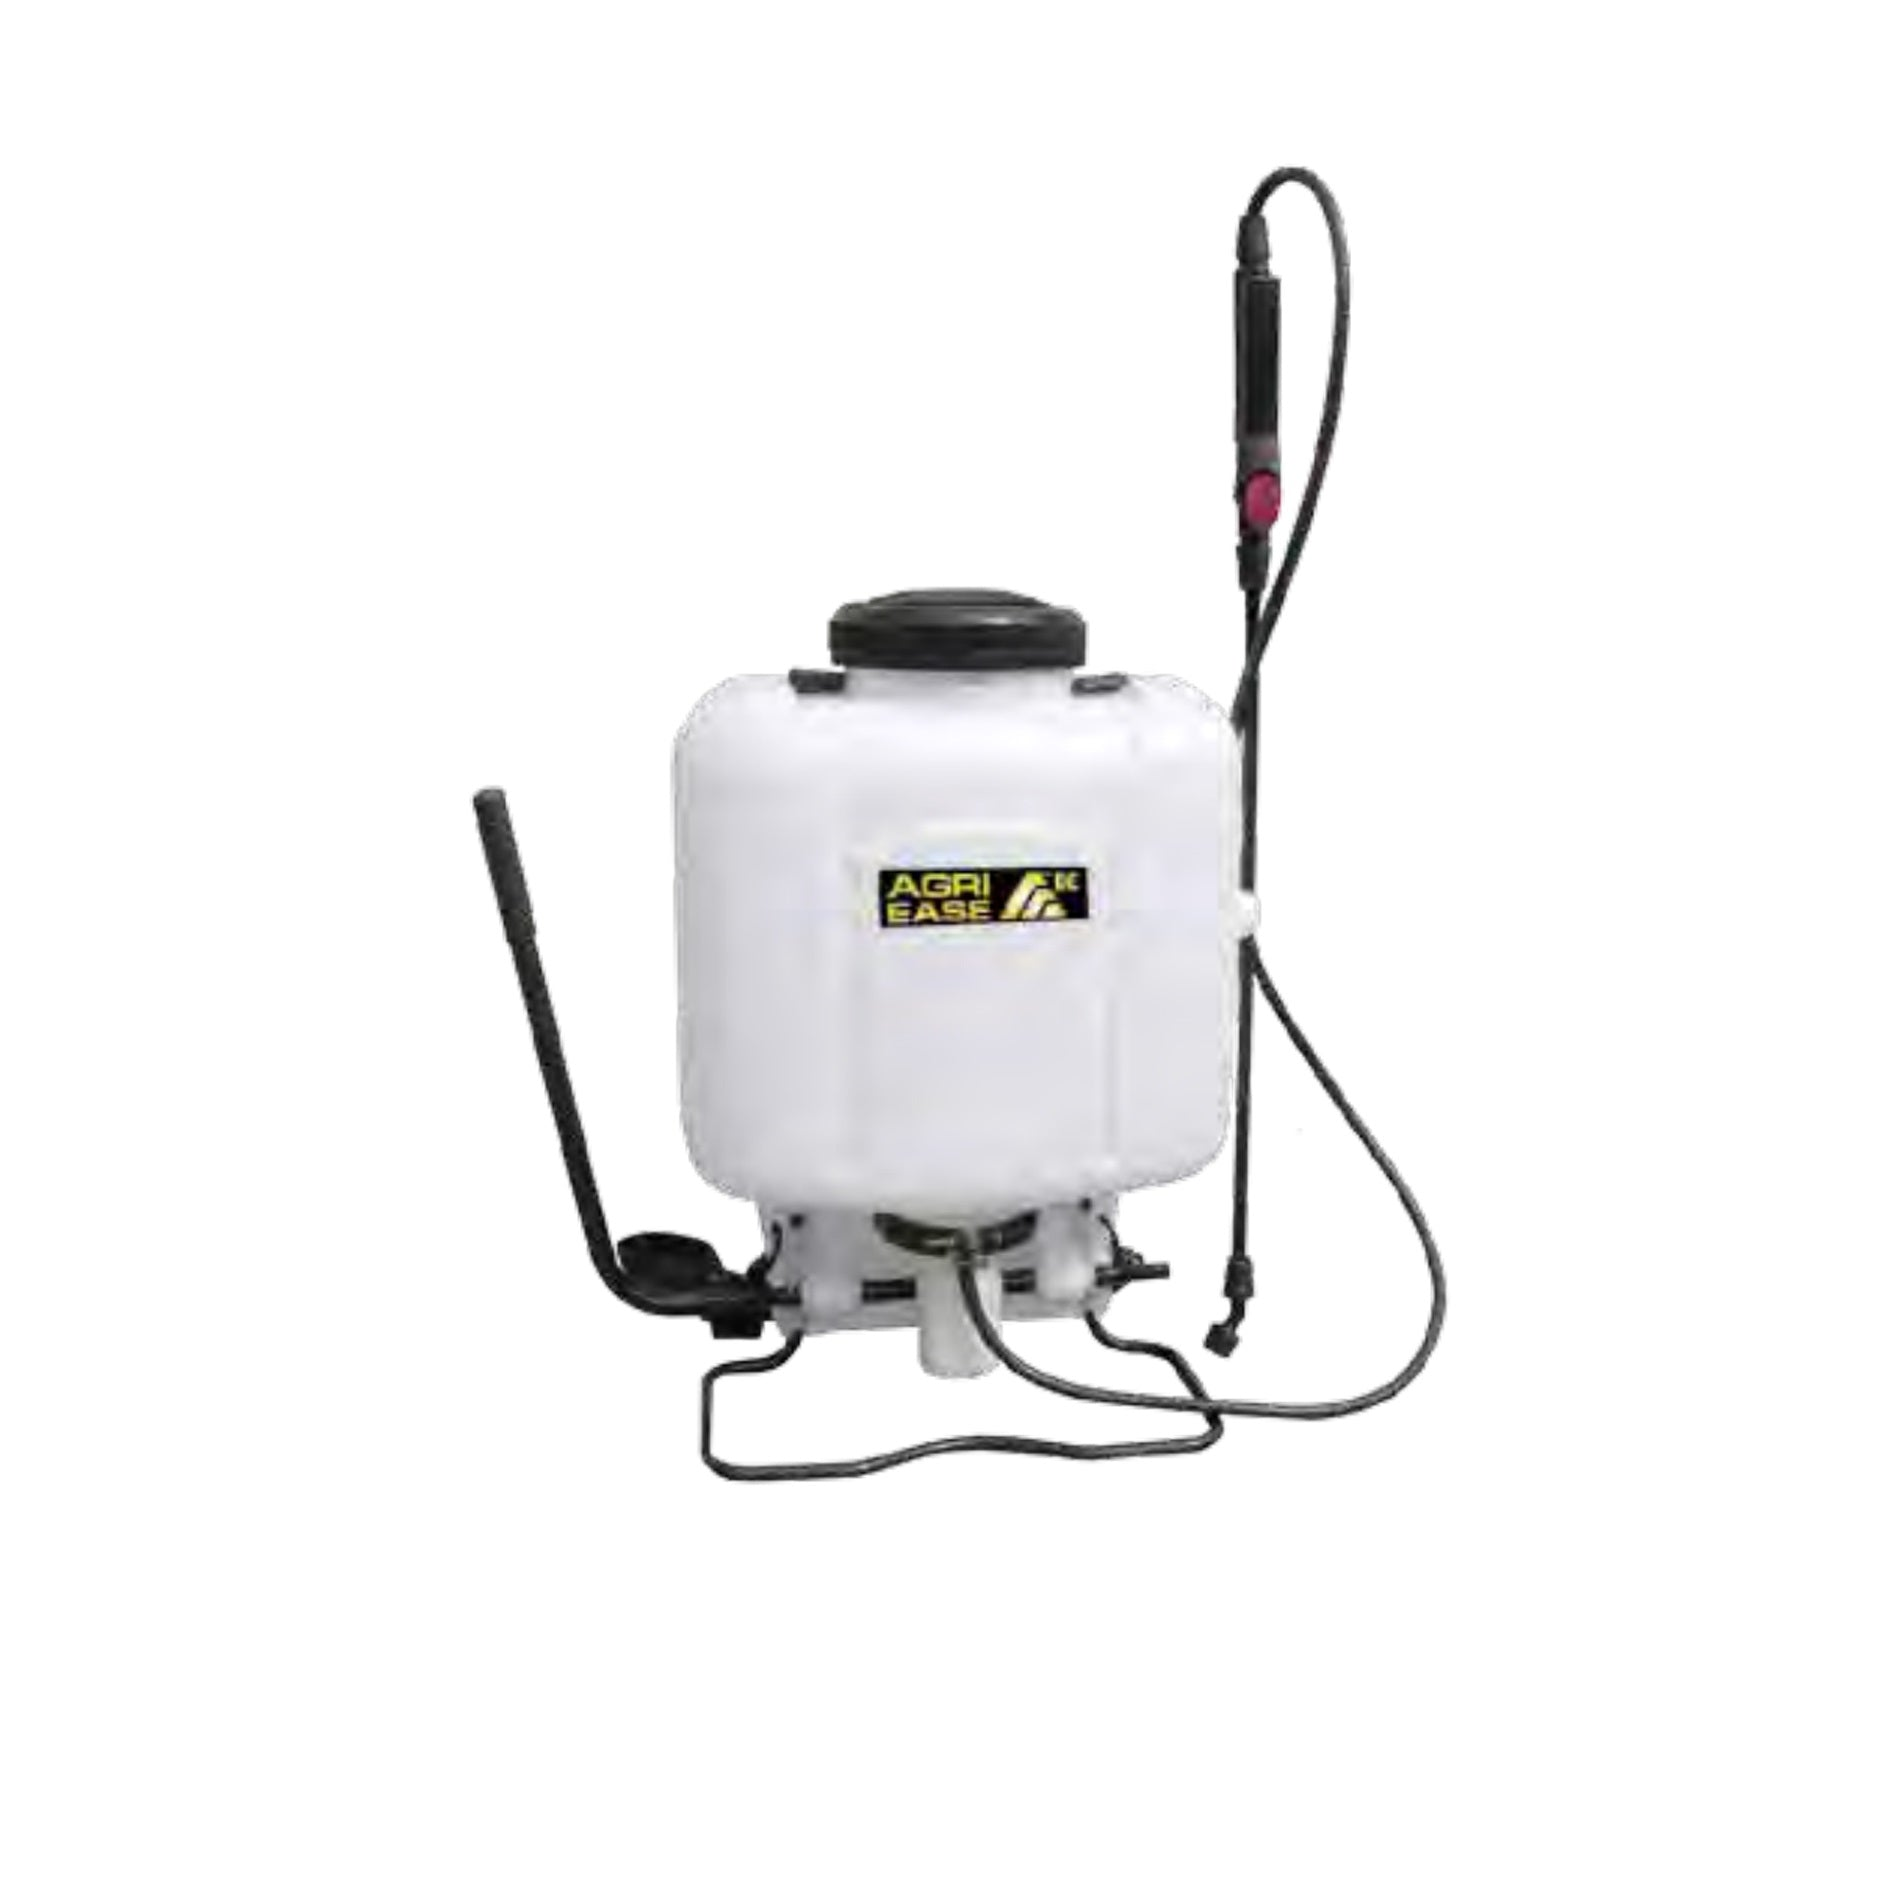 BE Backpack Hand Pump Sprayer 16L (4.2 Gal)